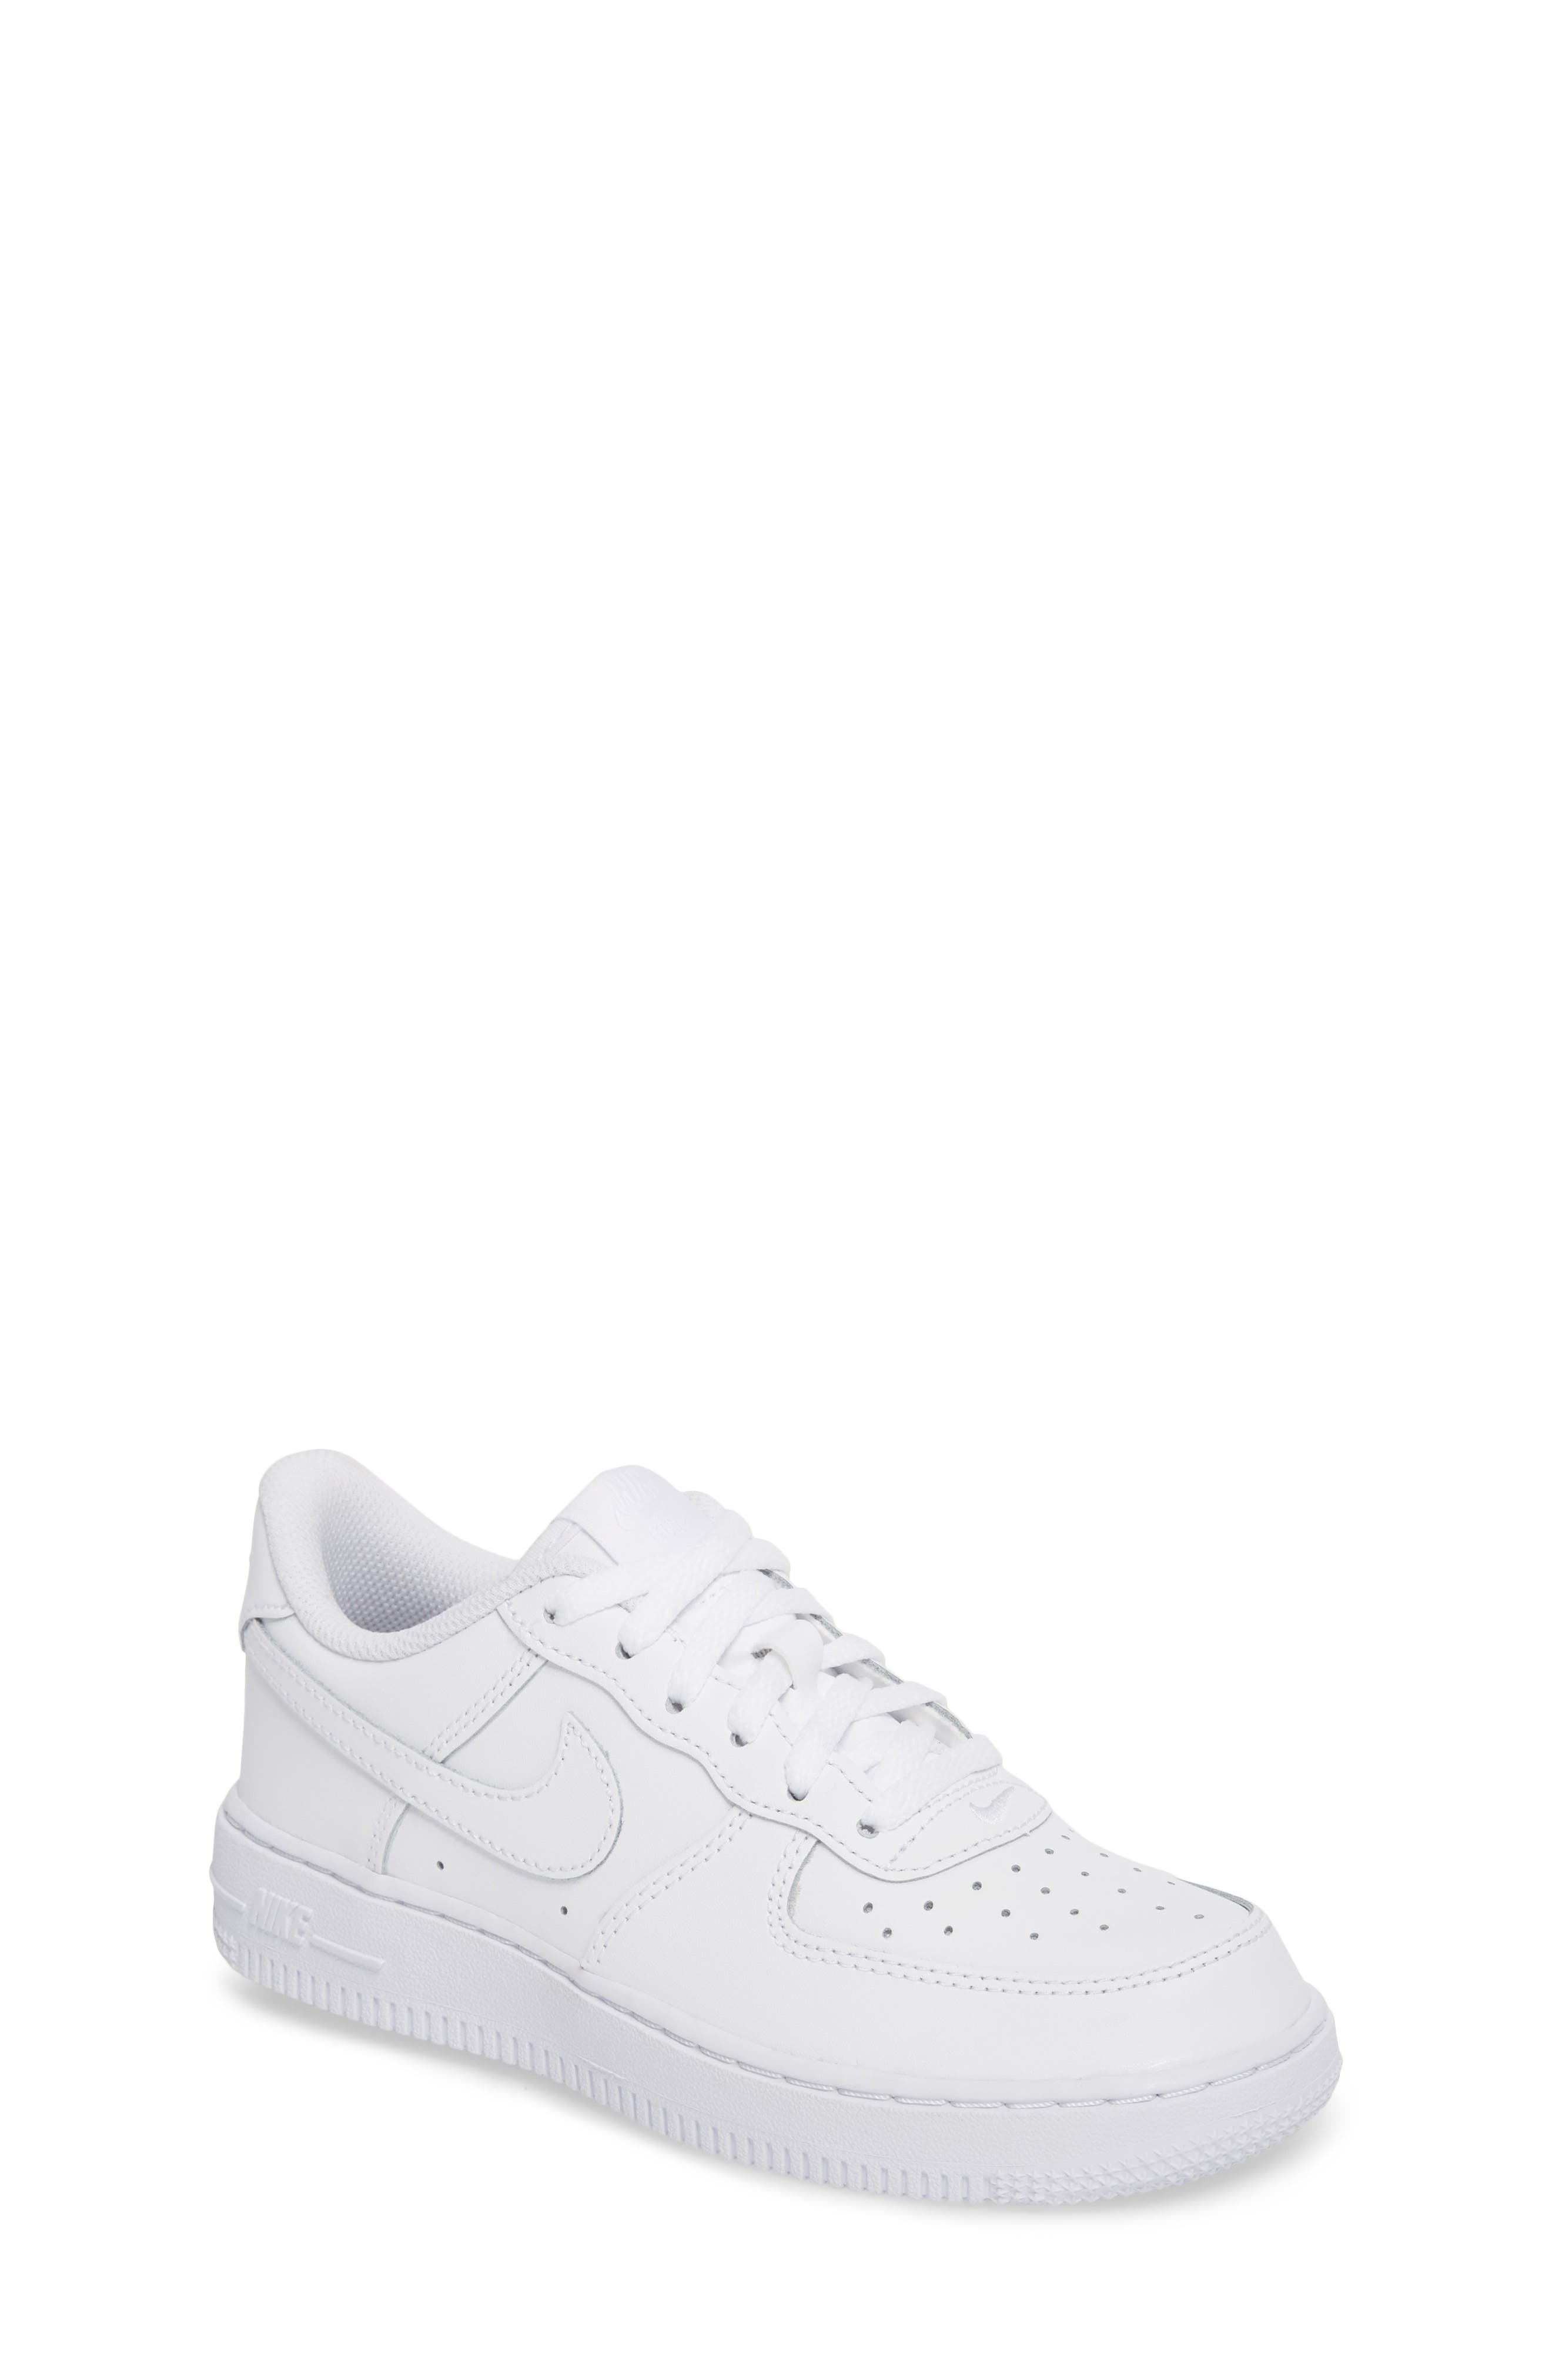 Main Image - Nike Air Force 1 Sneaker (Toddler & Little Kid)